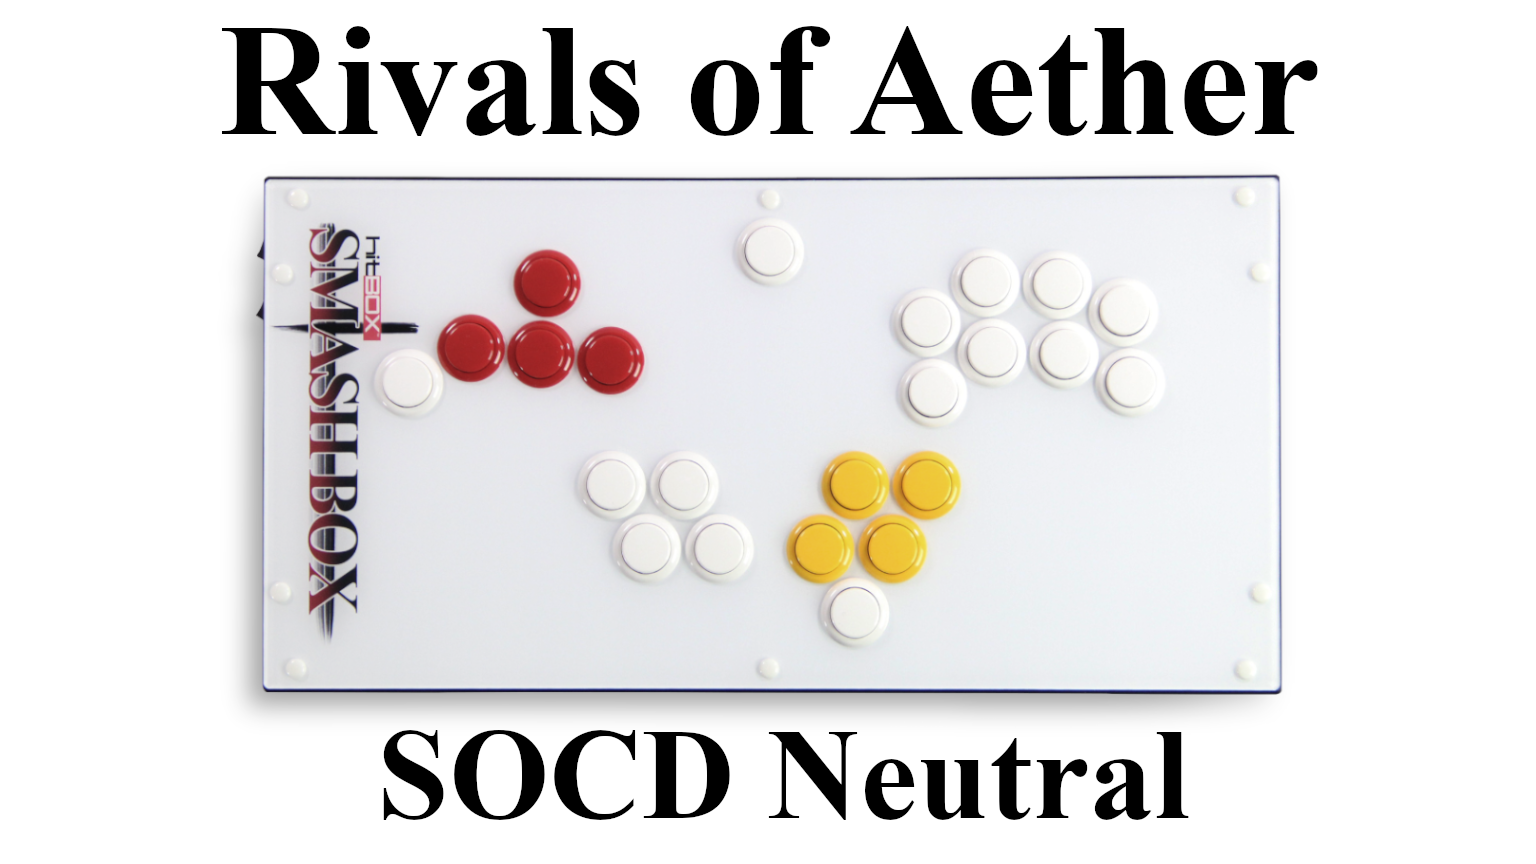 SOCD Neutral in Rivals of Aether